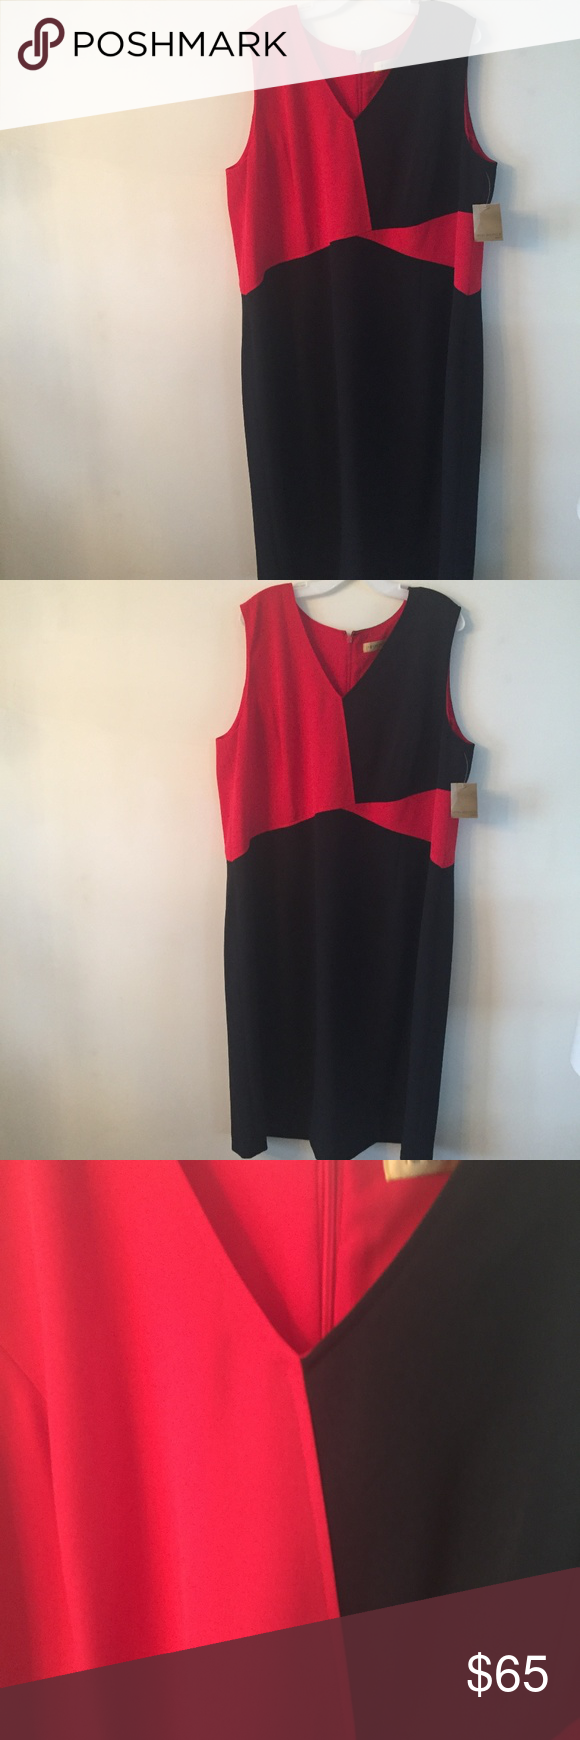 Nwt nipon boutique sheath dress w boutique color red and red